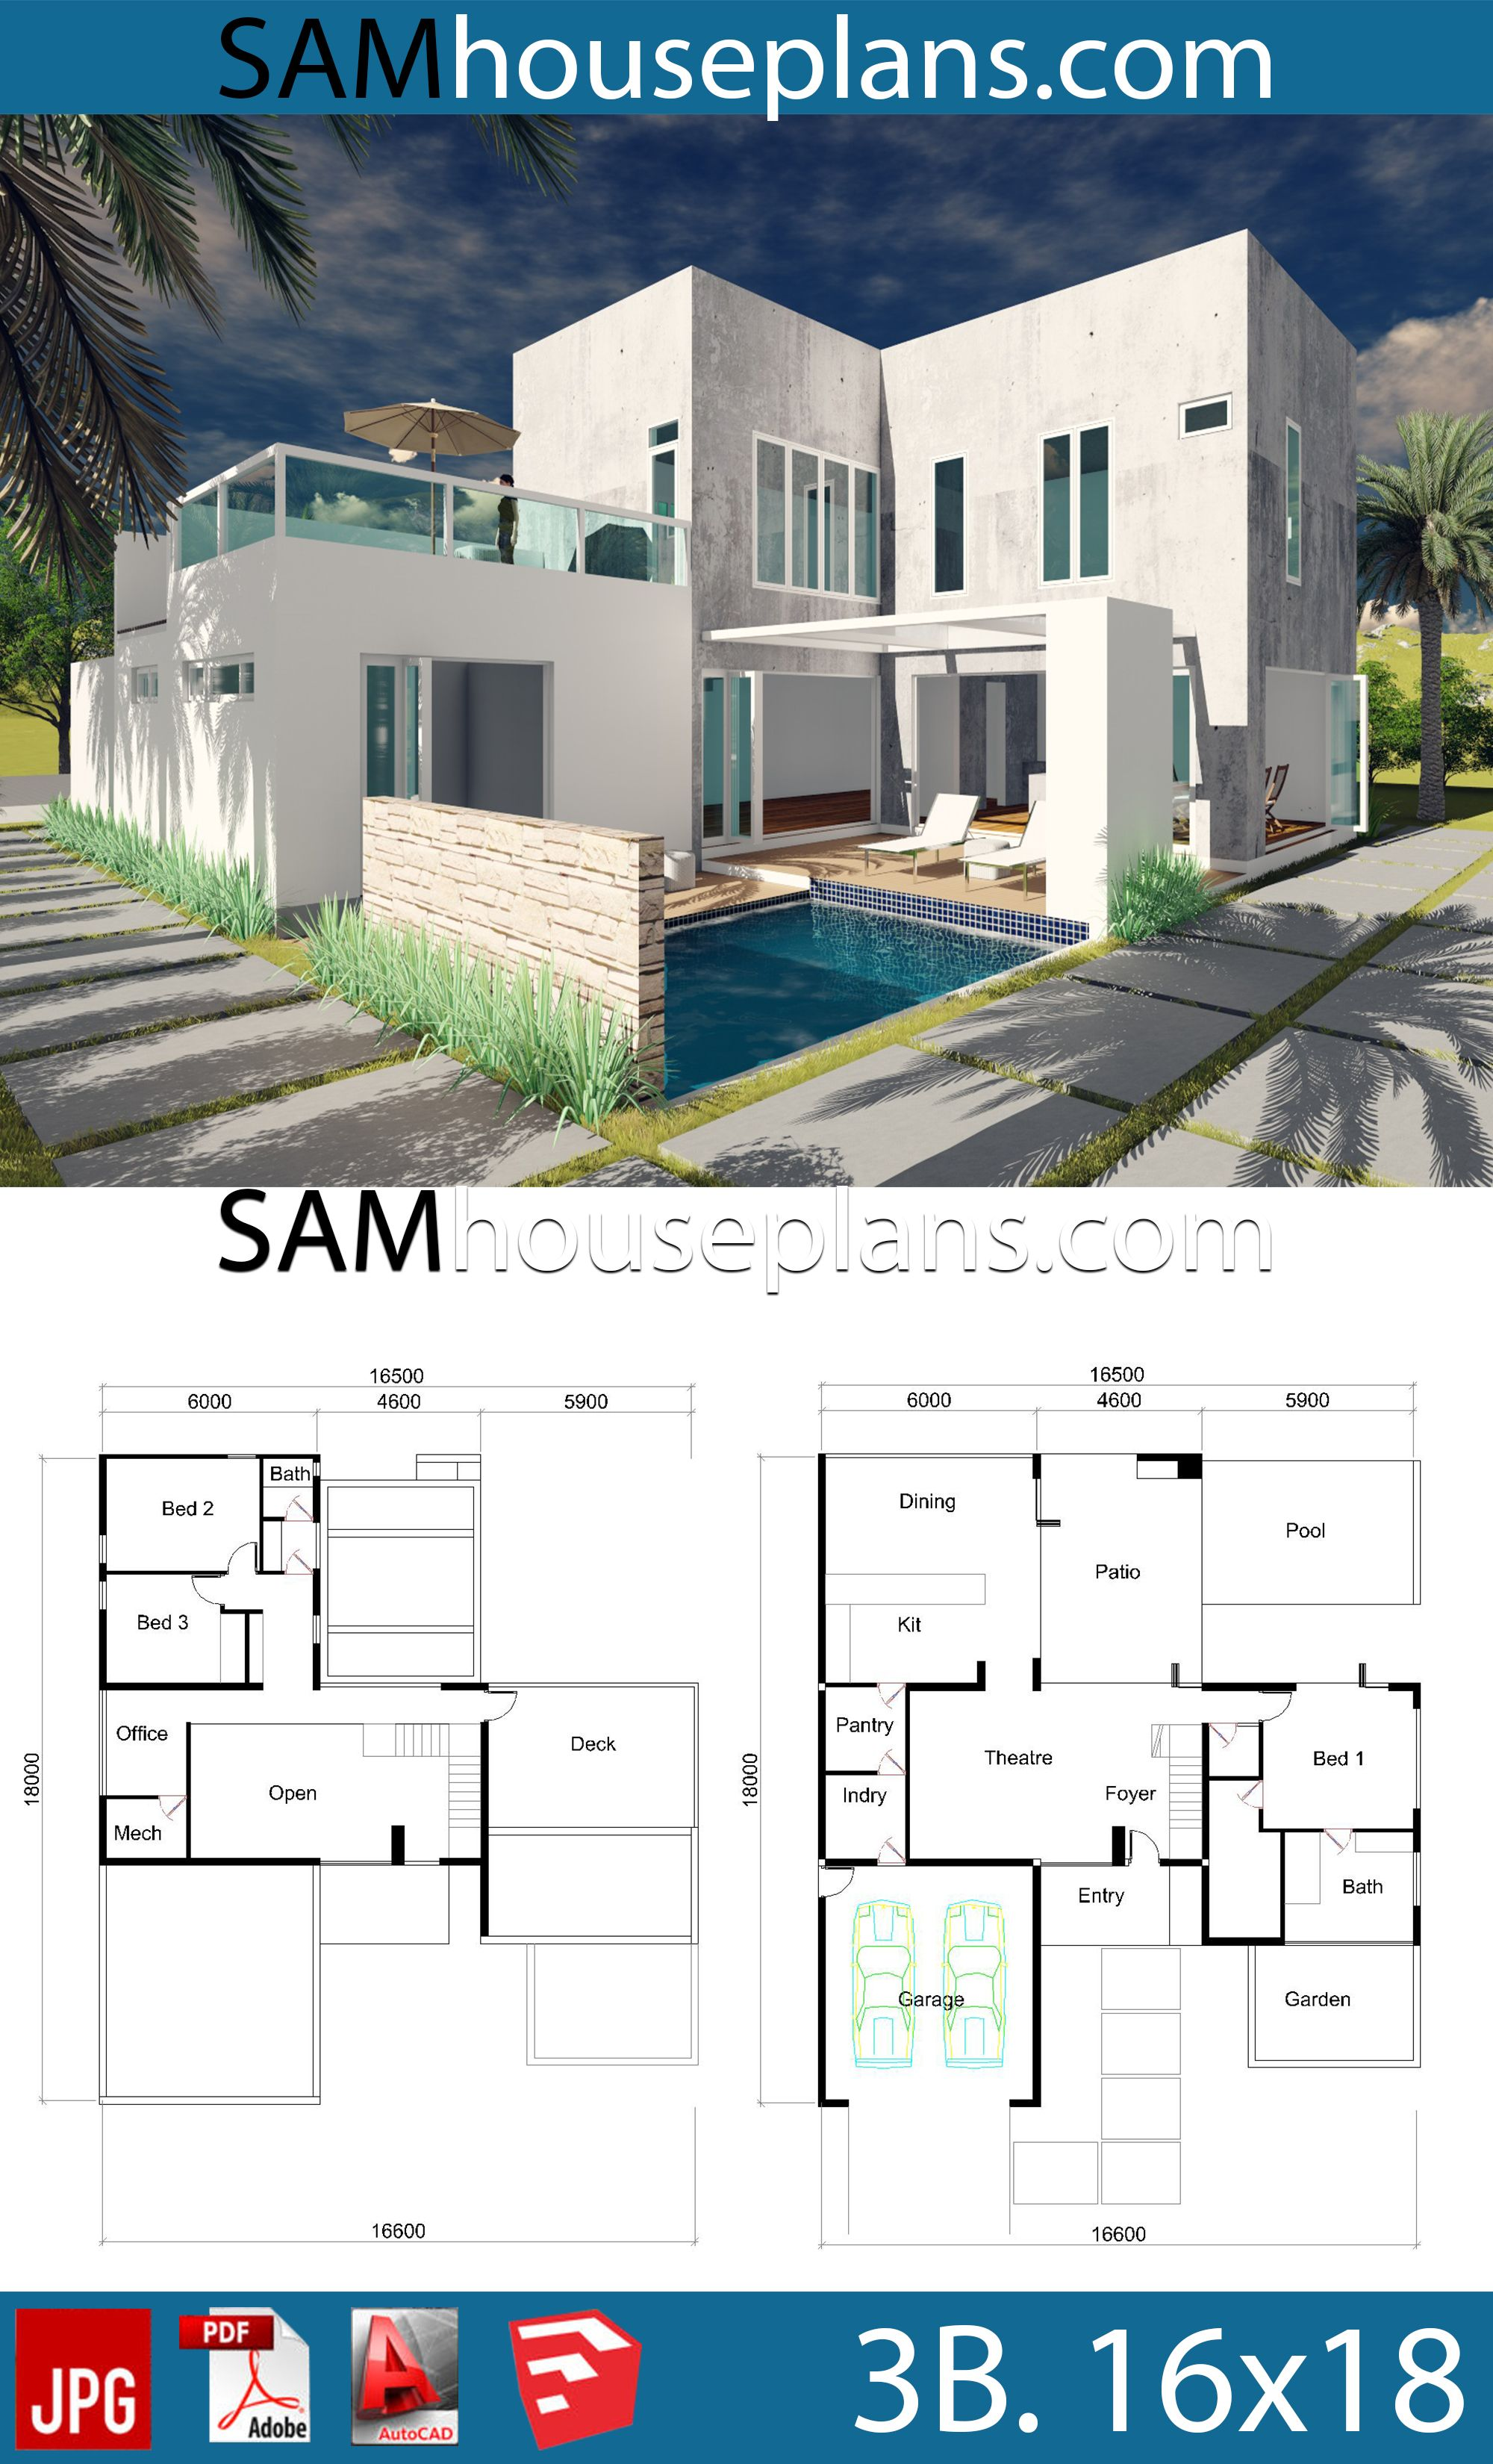 House Plans 16x18 With 3 Bedrooms House Plans Free Downloads Modern House Floor Plans House Plans Mansion Bungalow House Design